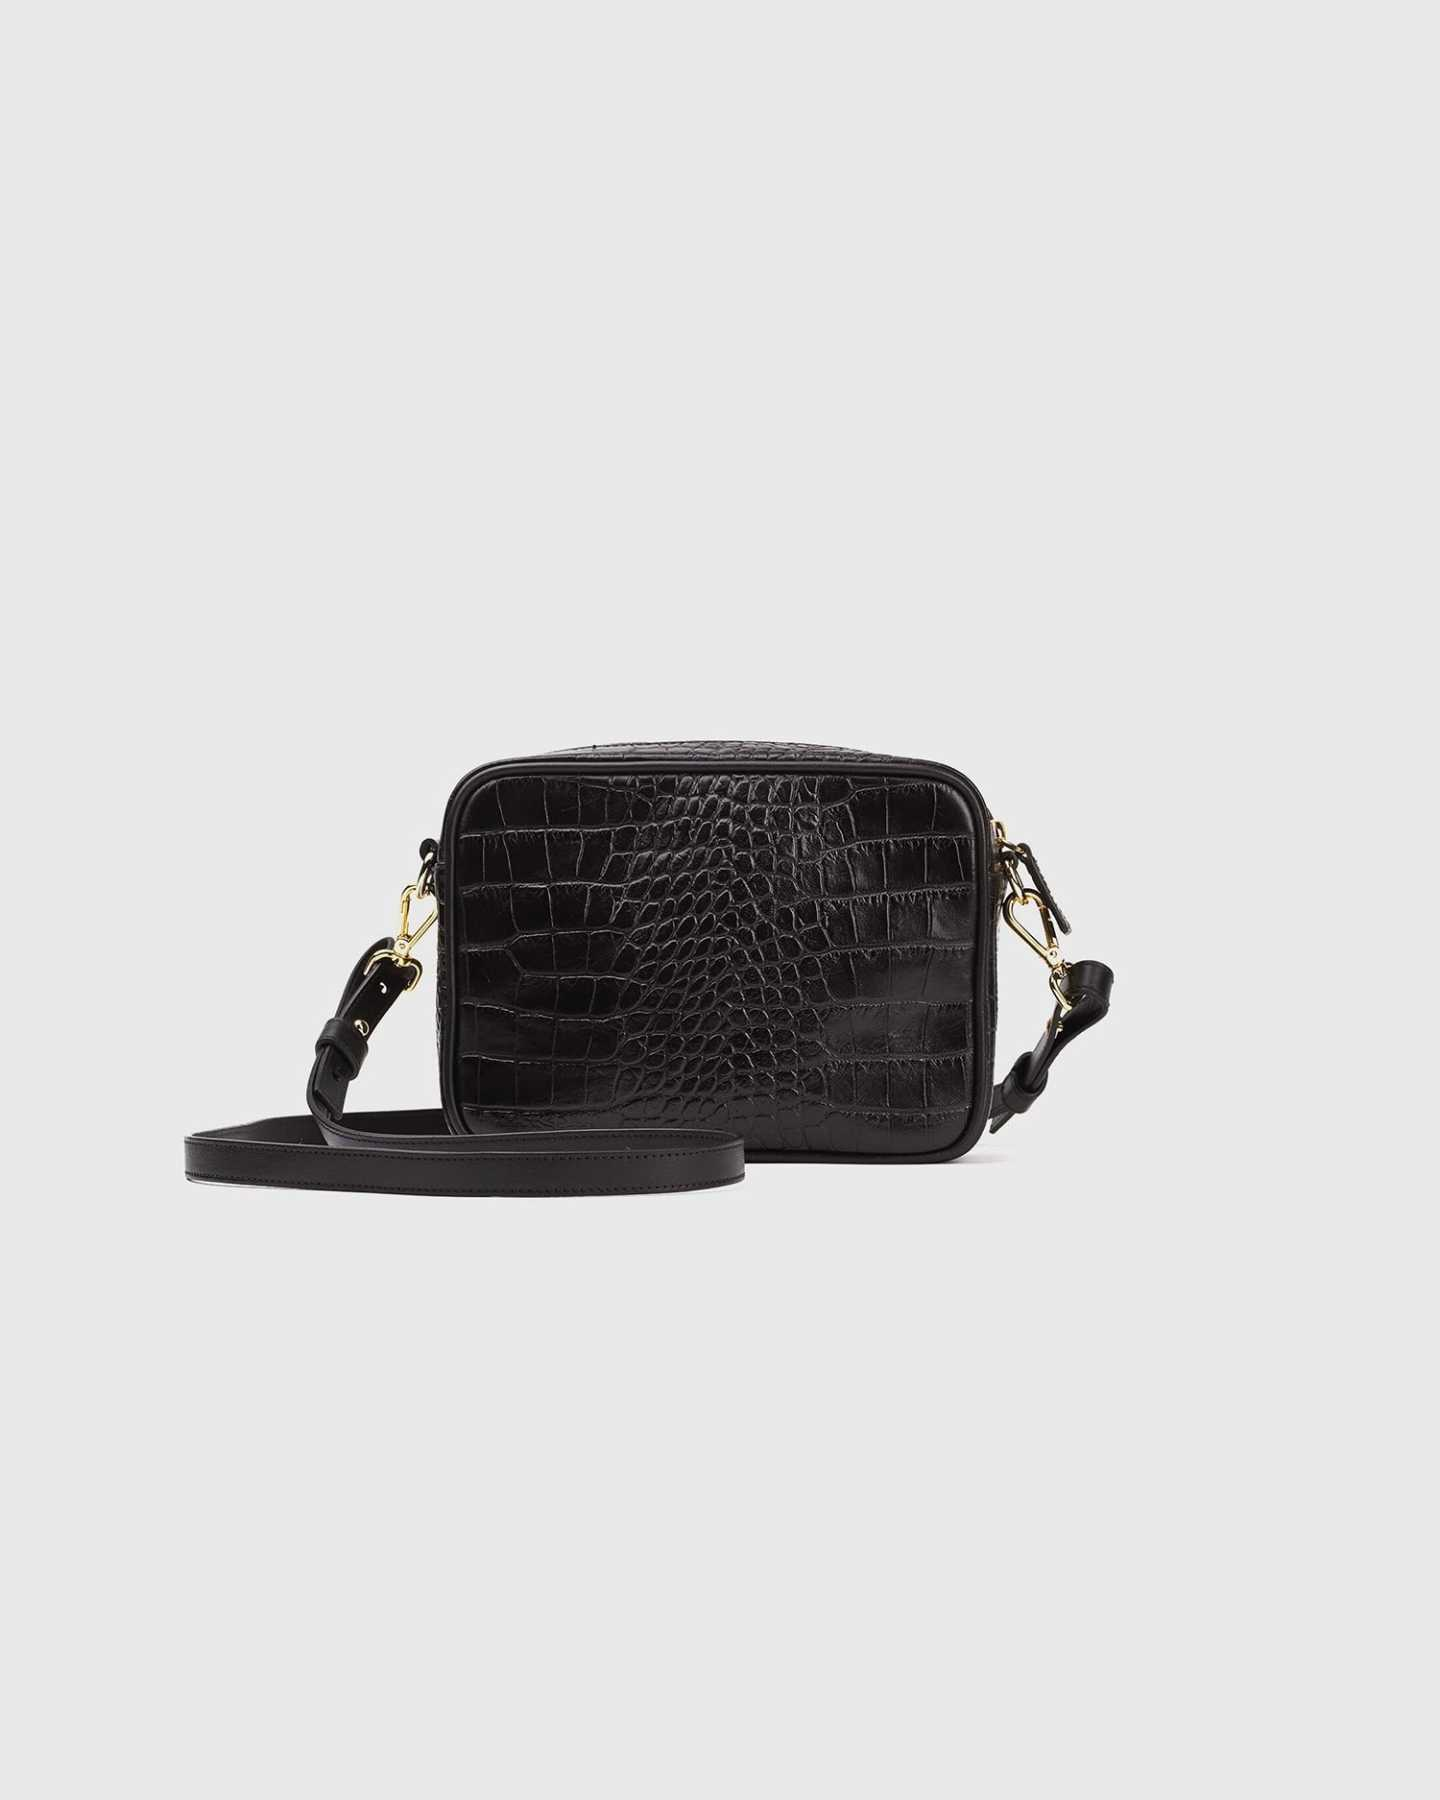 Pair With - Italian Leather Crossbody Bag - Black Croco